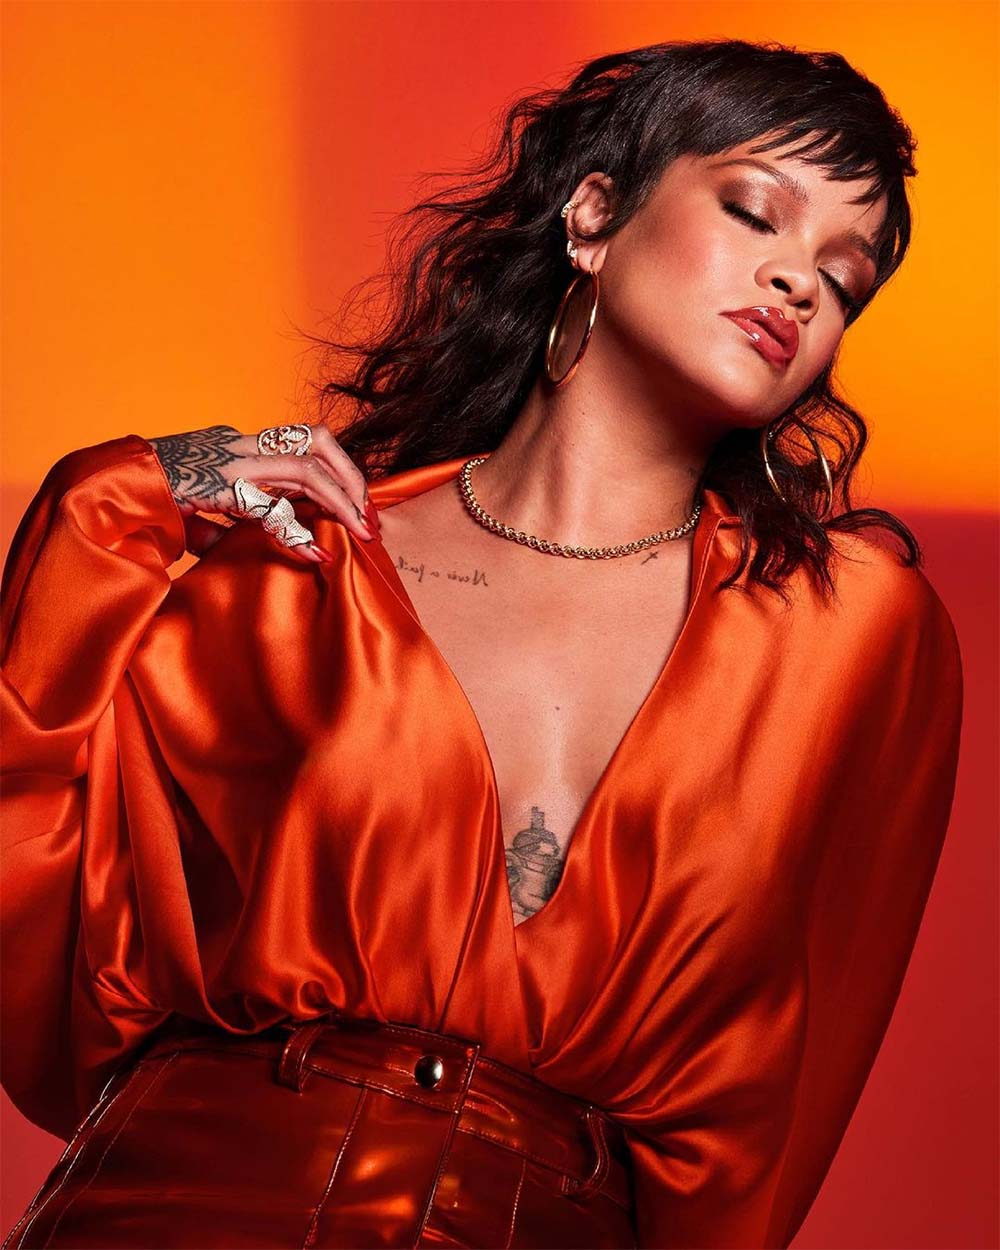 Rihanna Is Officially A Billionaire At 33 Years Old